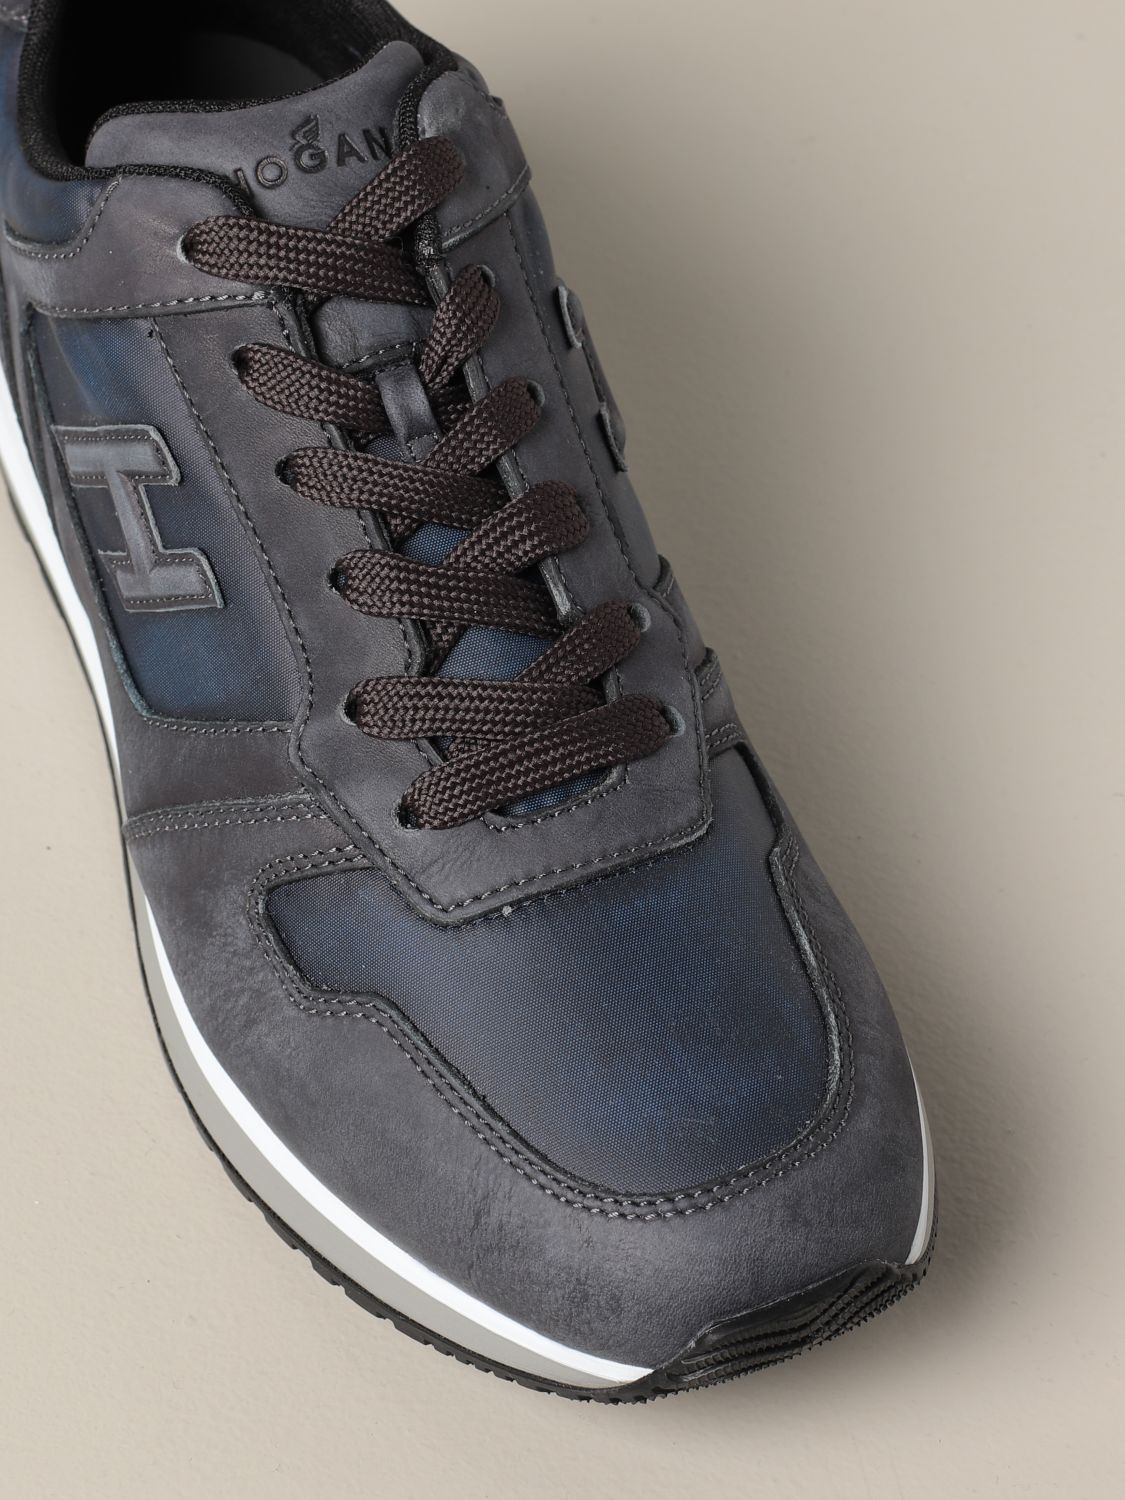 H321 Hogan sneakers in leather and nubuck